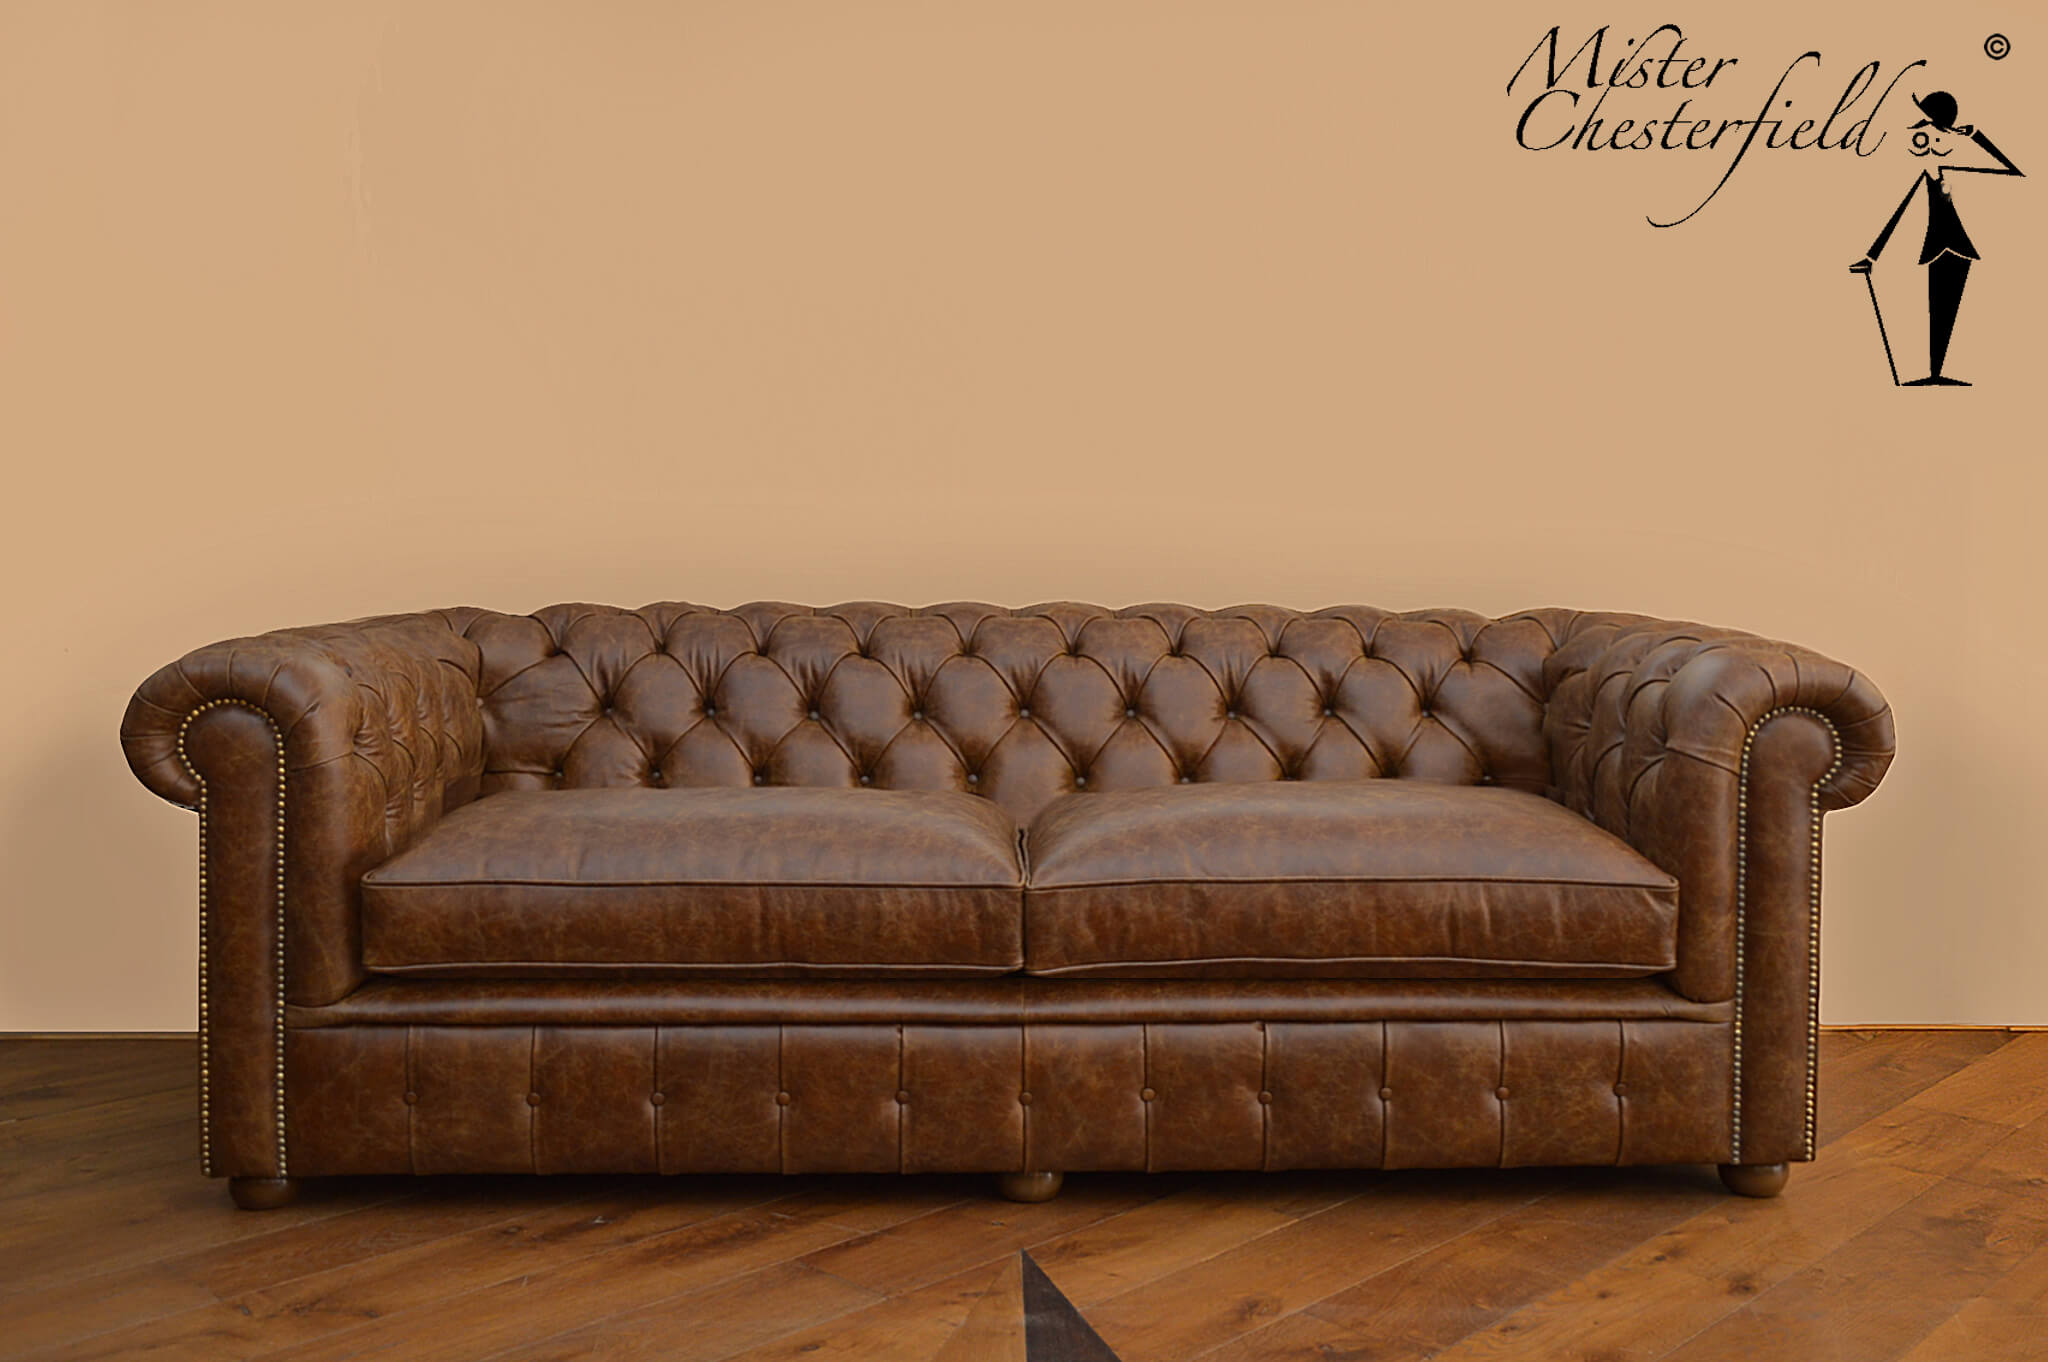 Vintage Cognac Chesterfield Sofa 225cm Directly Available